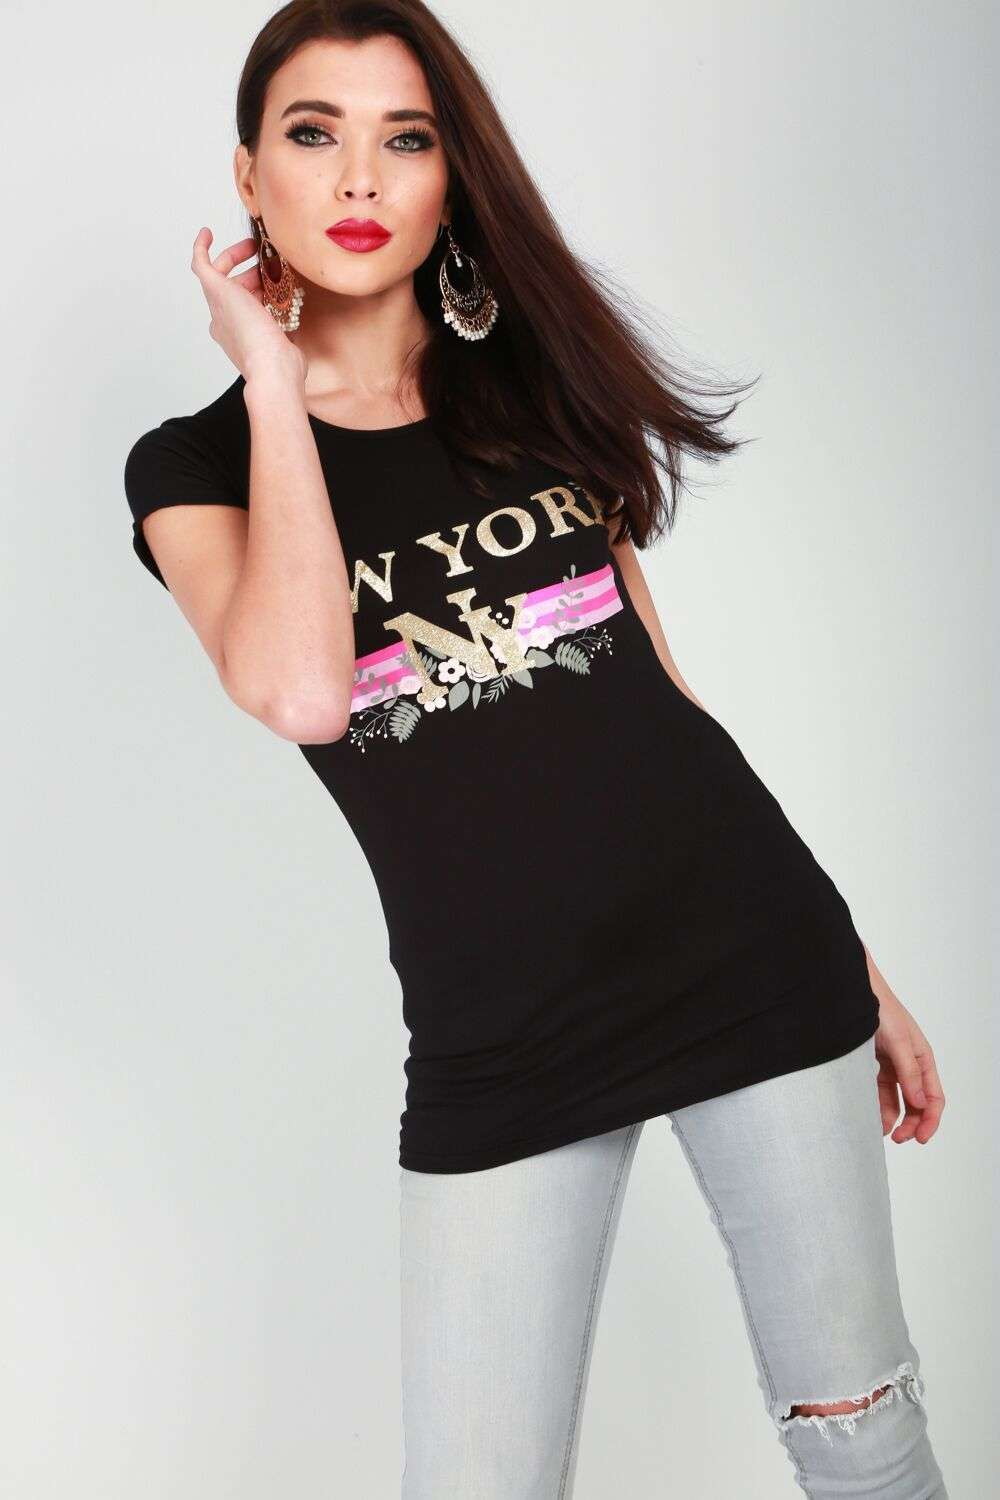 Ayla New York Slogan Print Slim Fit T-Shirt - bejealous-com